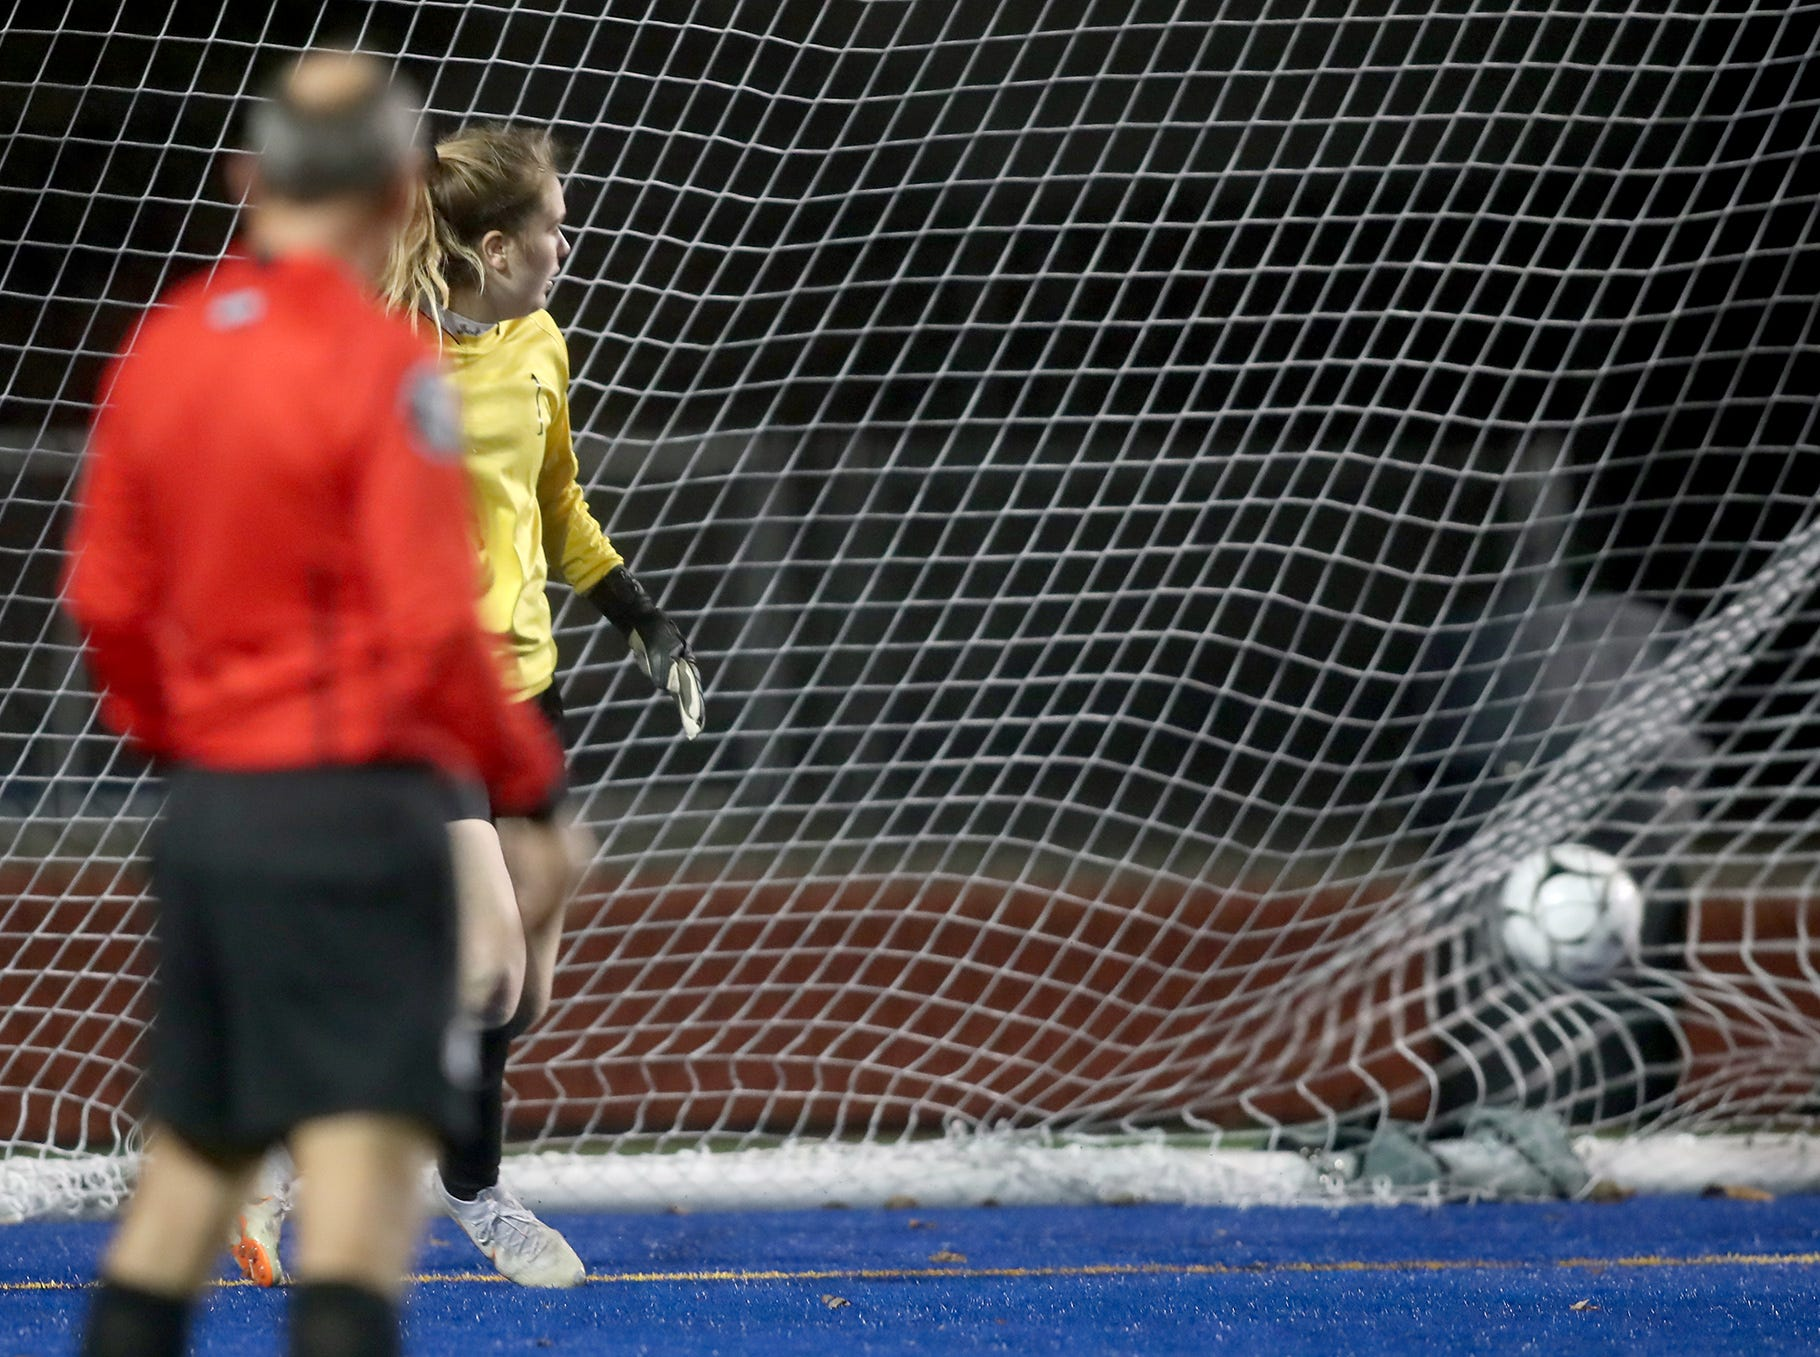 Klahowya lost to KingÕs Way on penalty kicks in overtime in the 2018 Girls Soccer State Championship 1A semifinal game at Shoreline Stadium on Friday, November 16, 2018. The penalty kick get past Klahowya goal keeper Maria Mist.